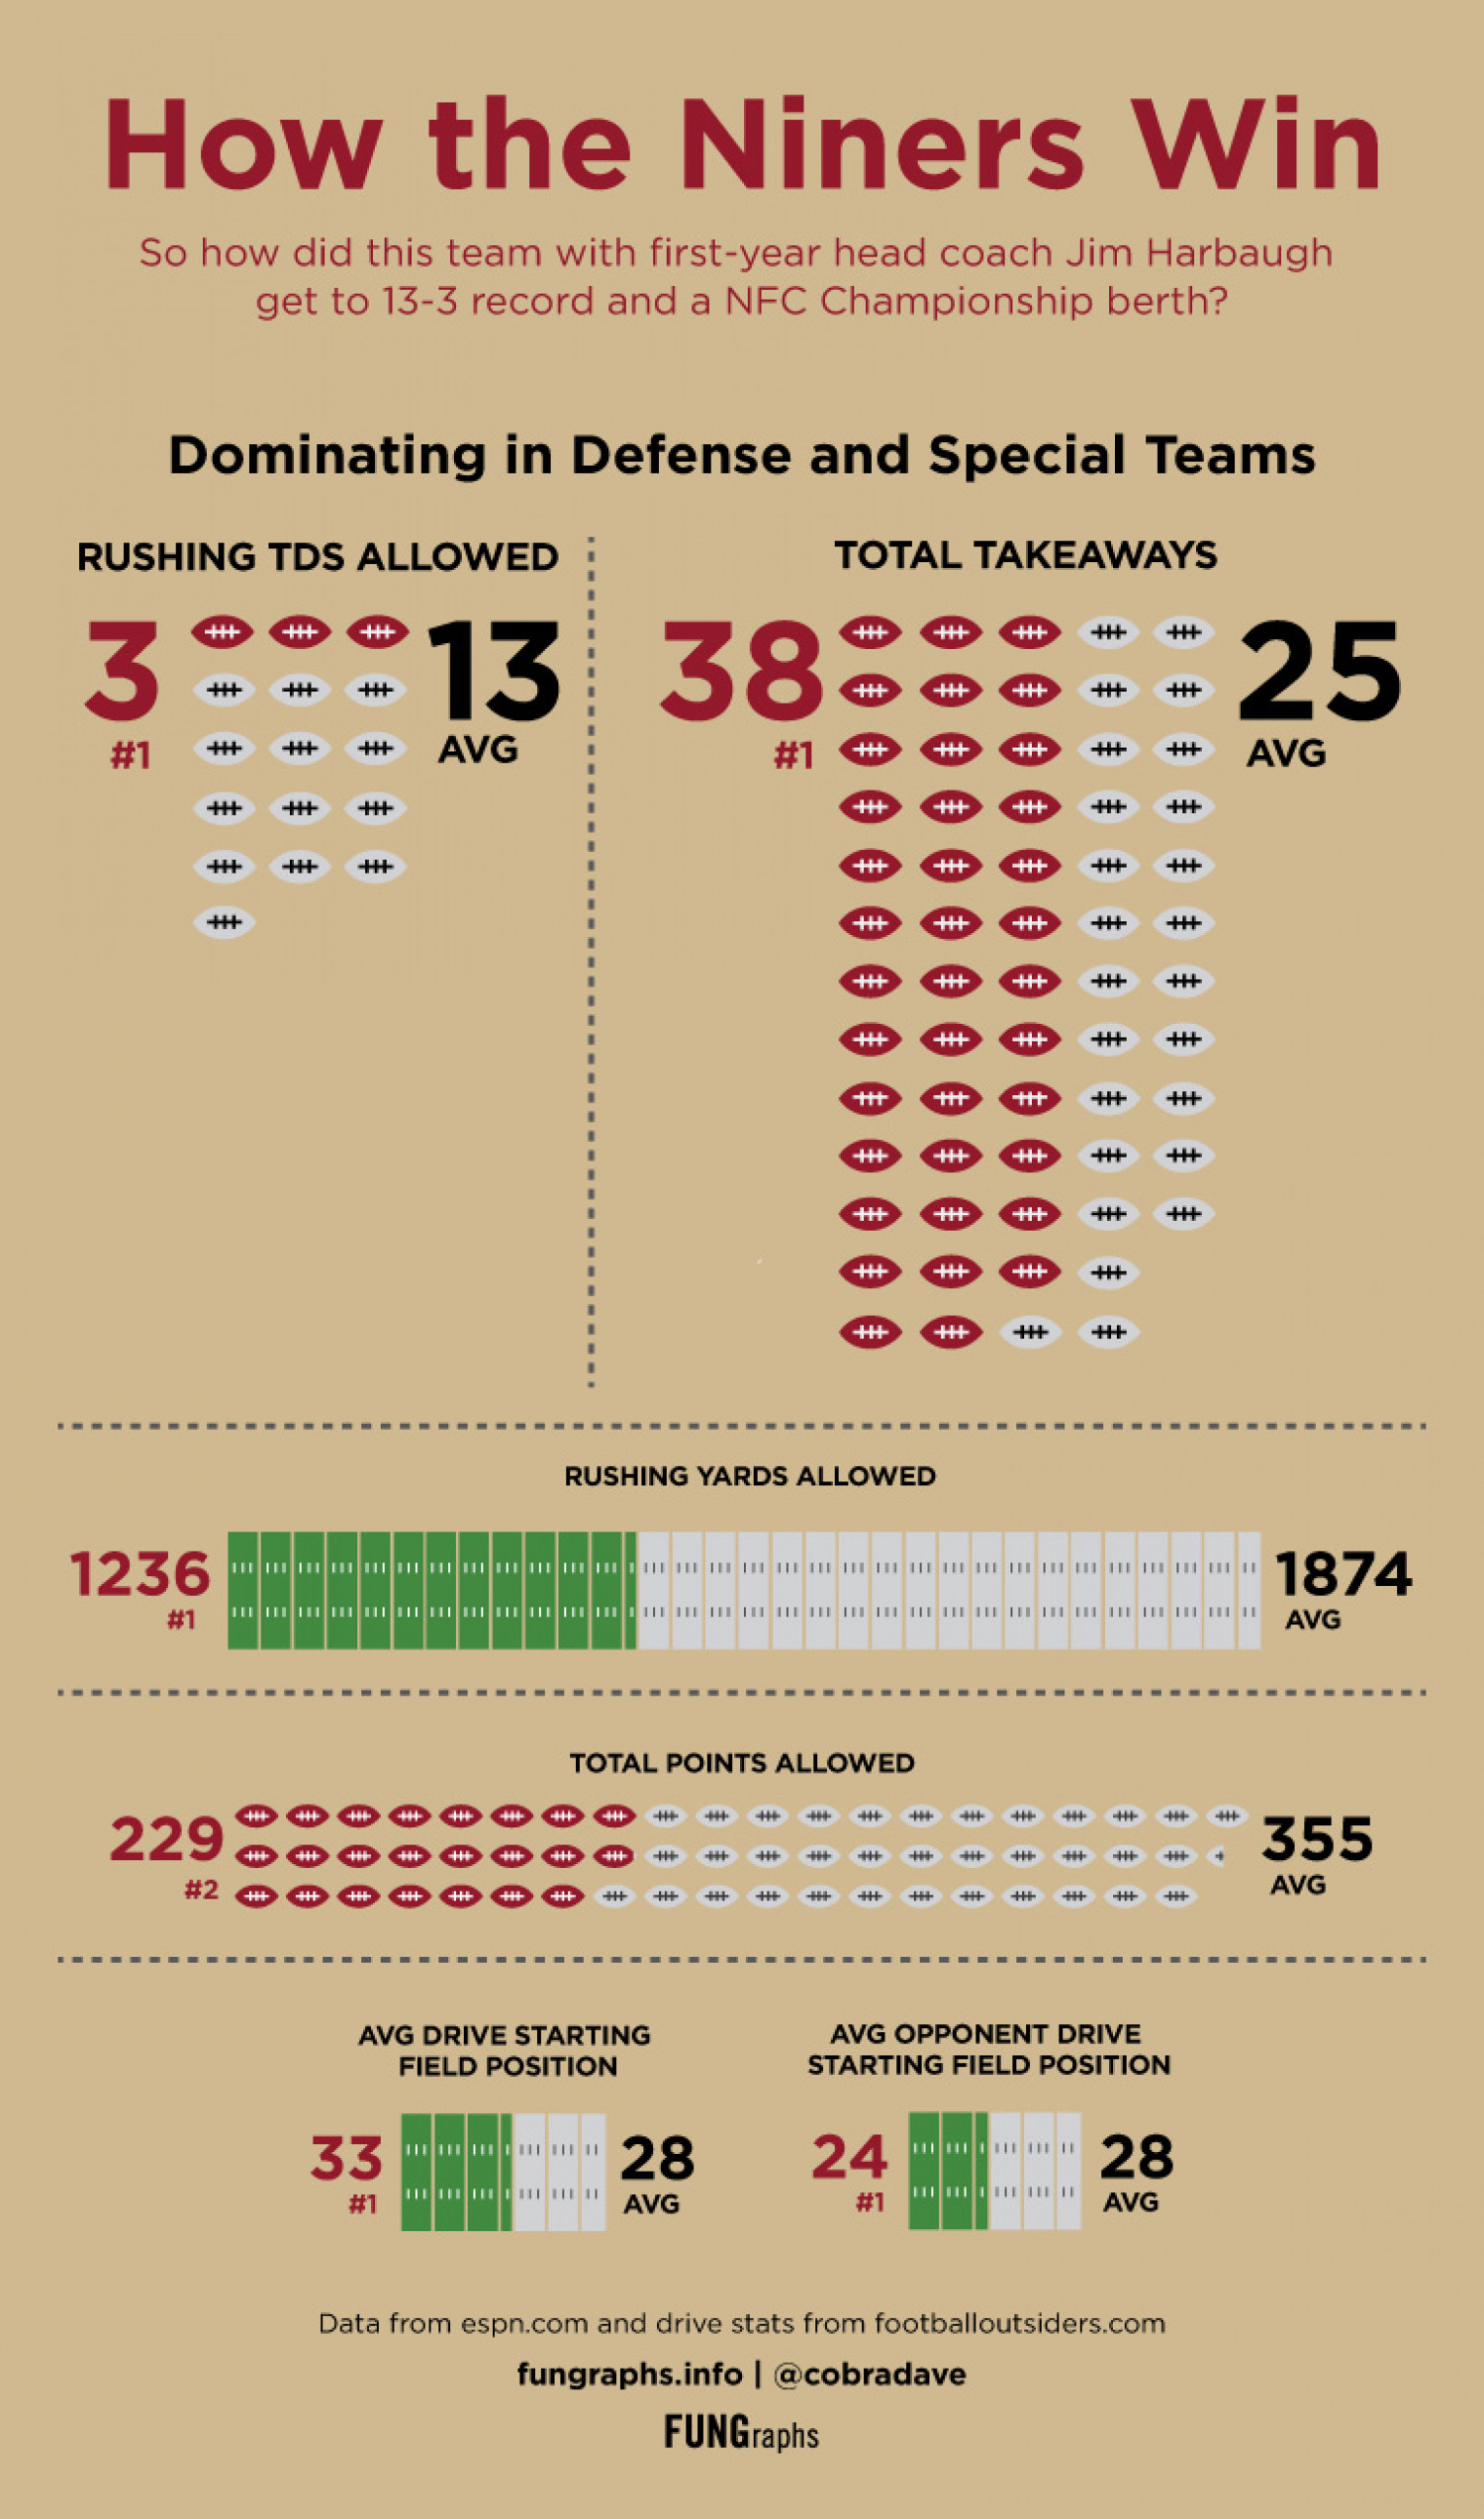 How the Niners Win, 2012 Infographic